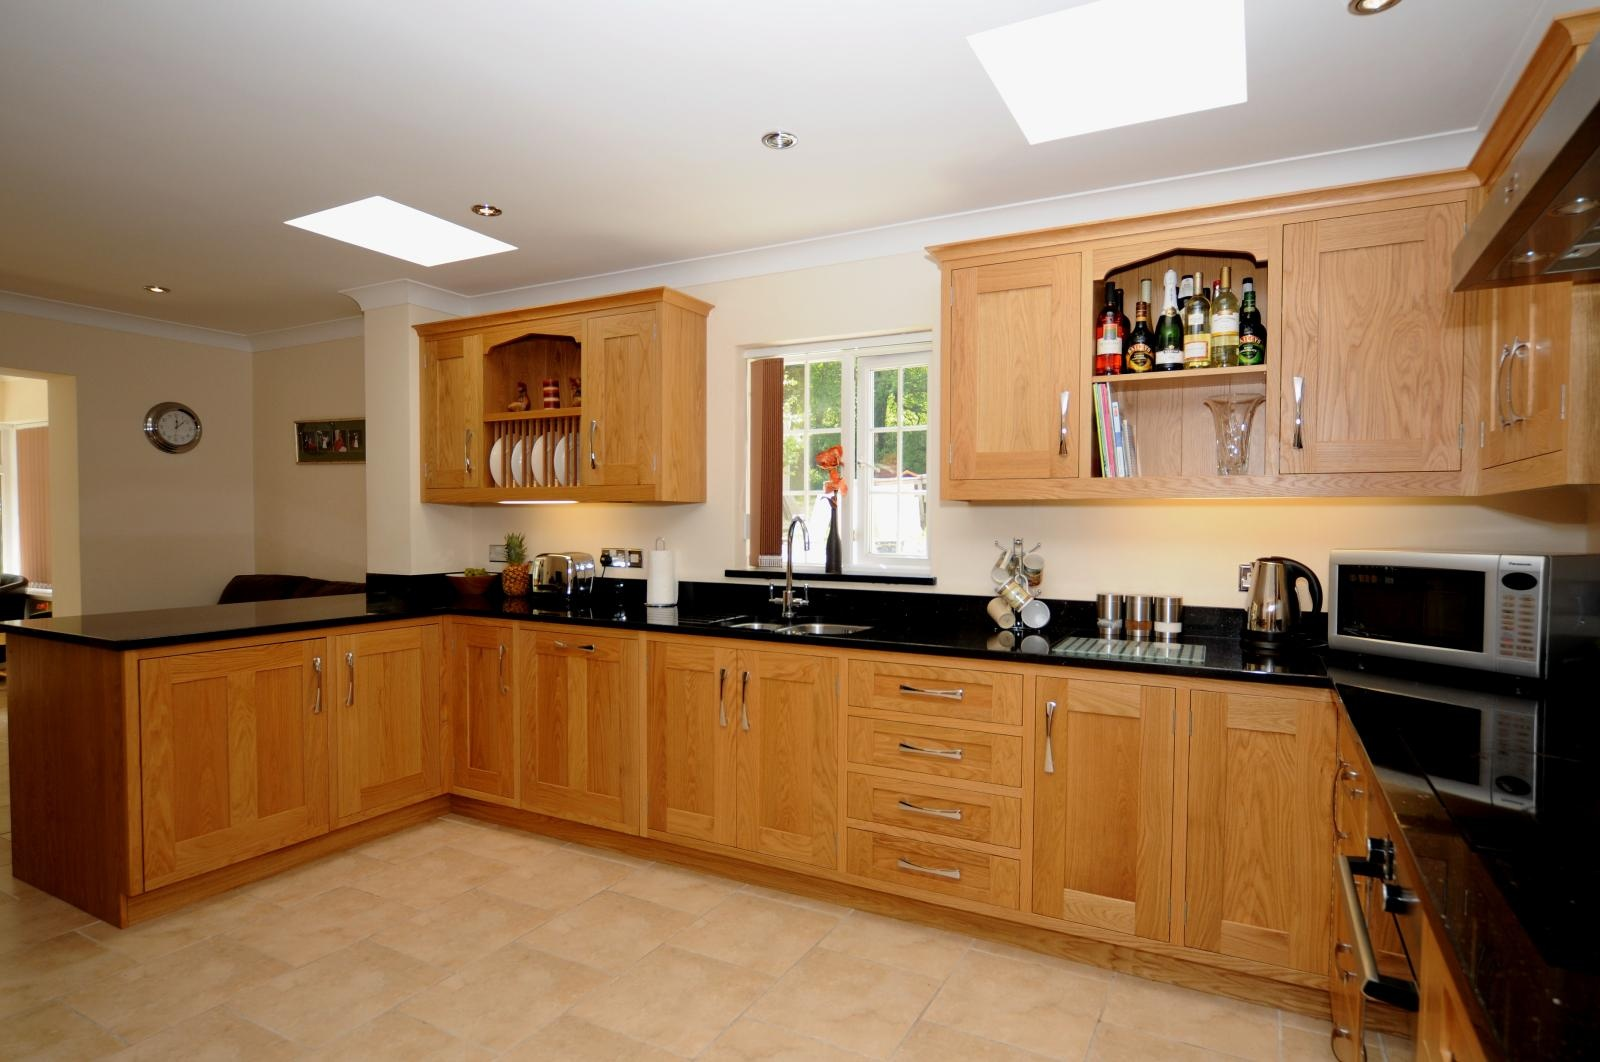 Oak Shaker Kitchen St Davids Mark Stone 39 S Welsh Kitchens Bespoke Kitchens And Furnuture Made